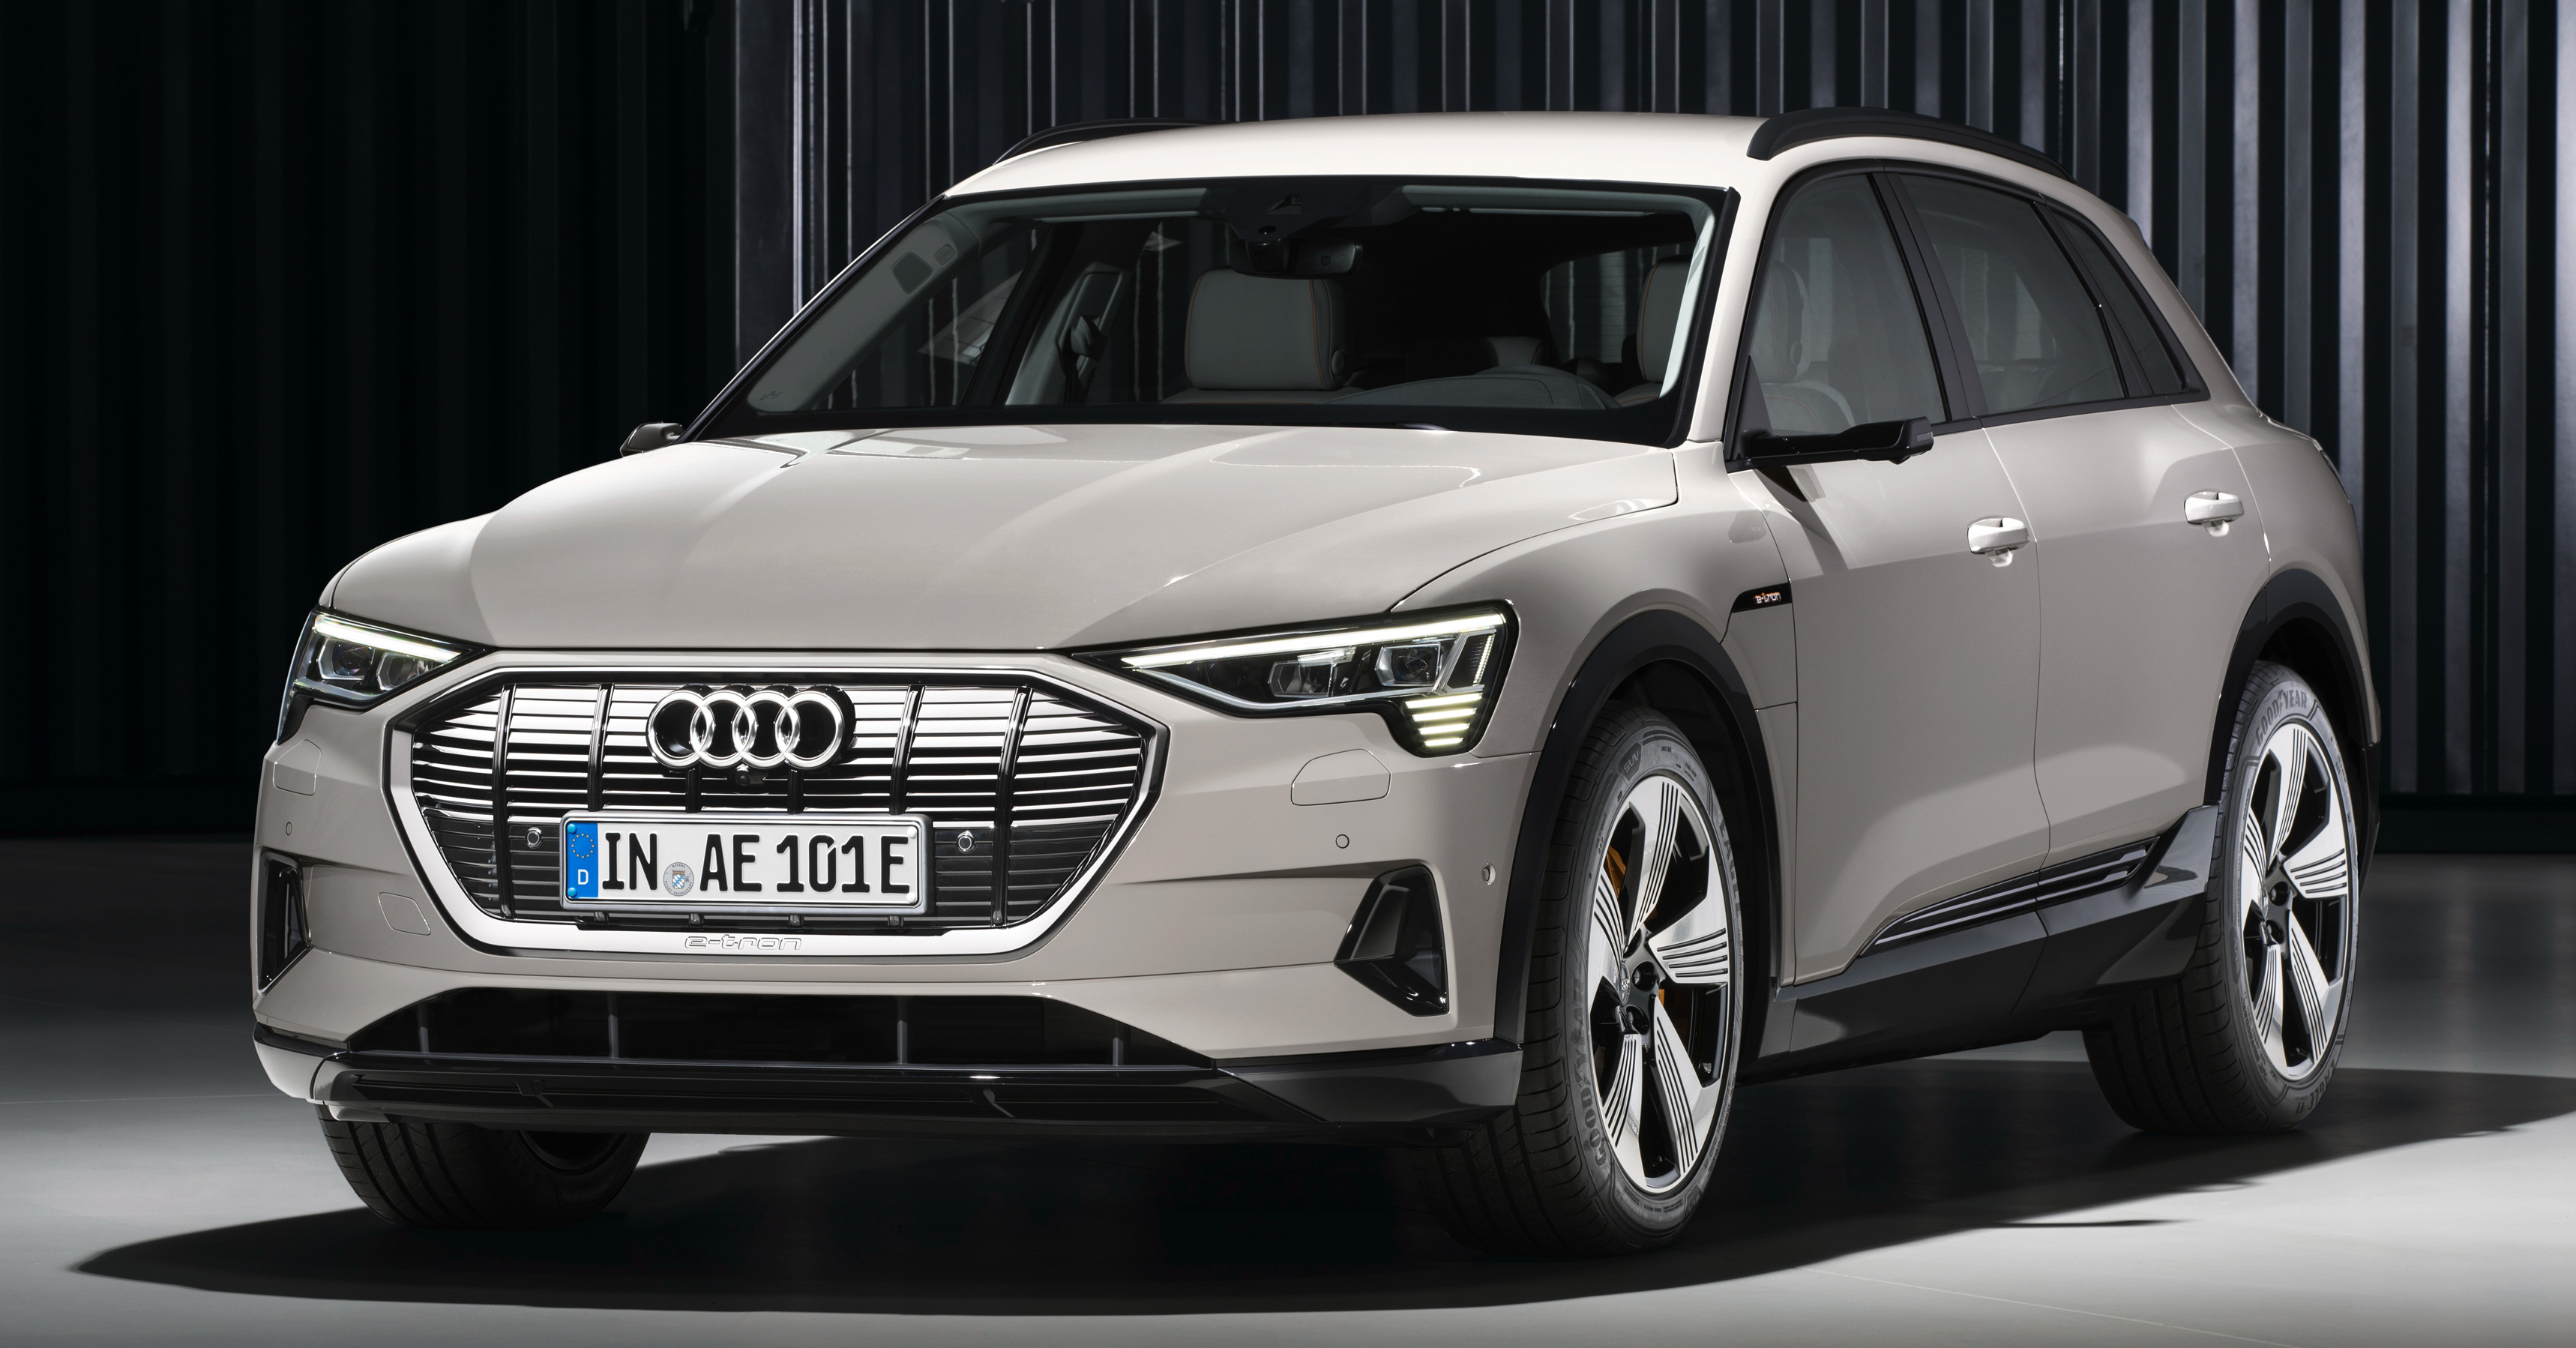 New Audi Compact Electric Suv Due In 2021 Most Affordable Model In E Tron Range Priced From Rm158k Paultan Org